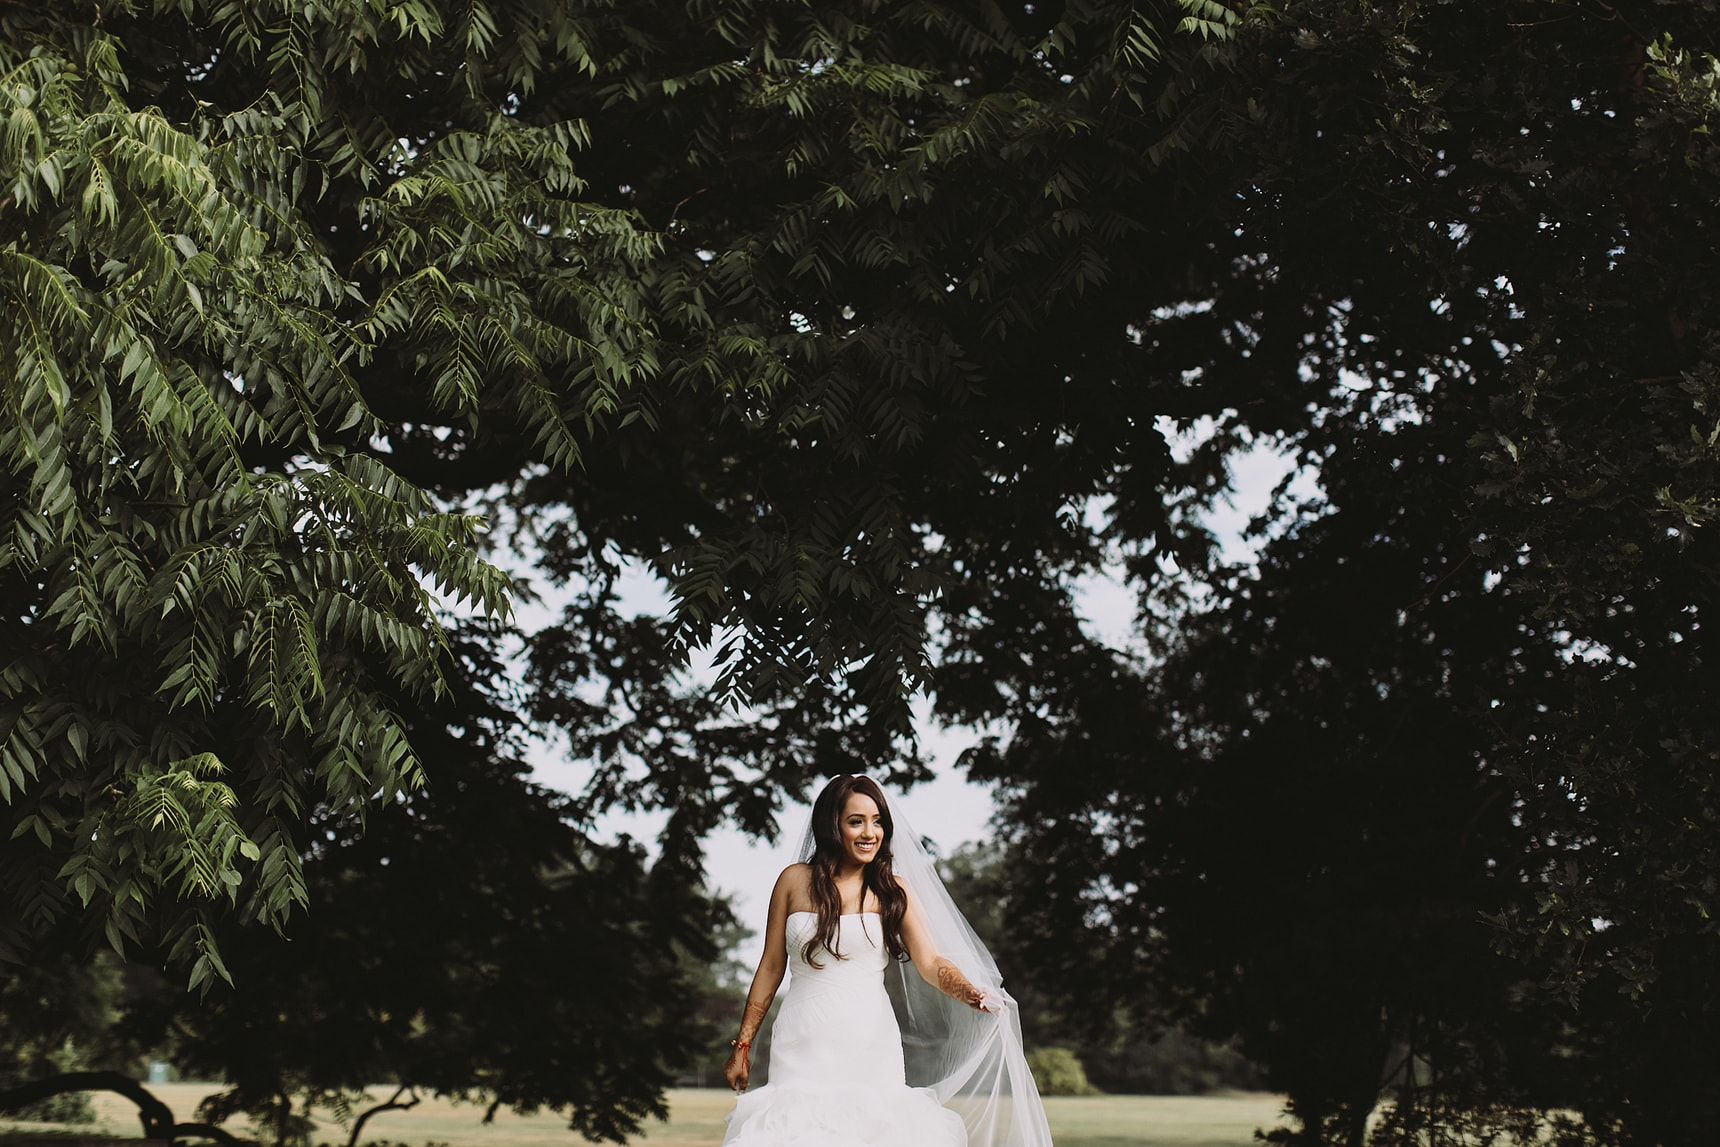 hylands house wedding photography chelmsford